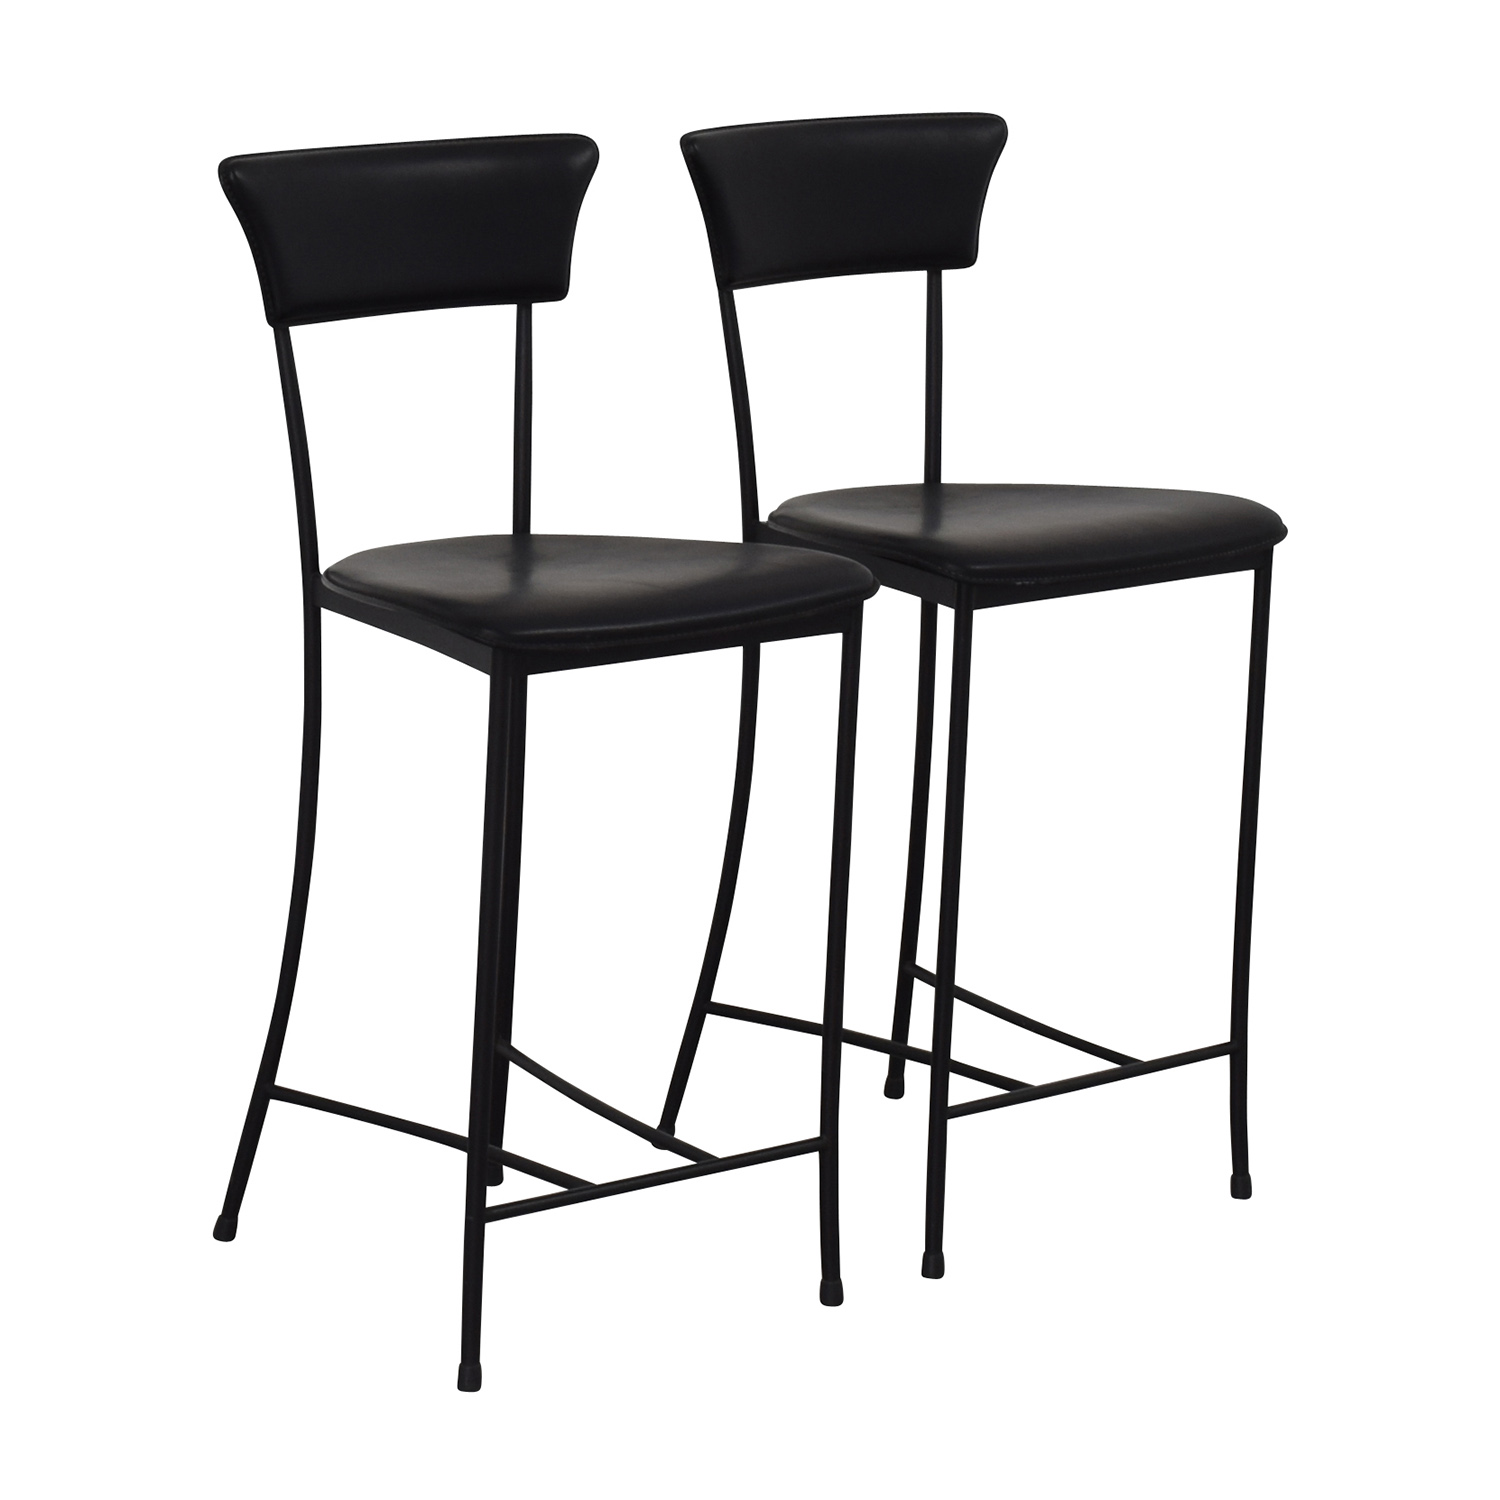 Black Leatherette Counter Height Chairs